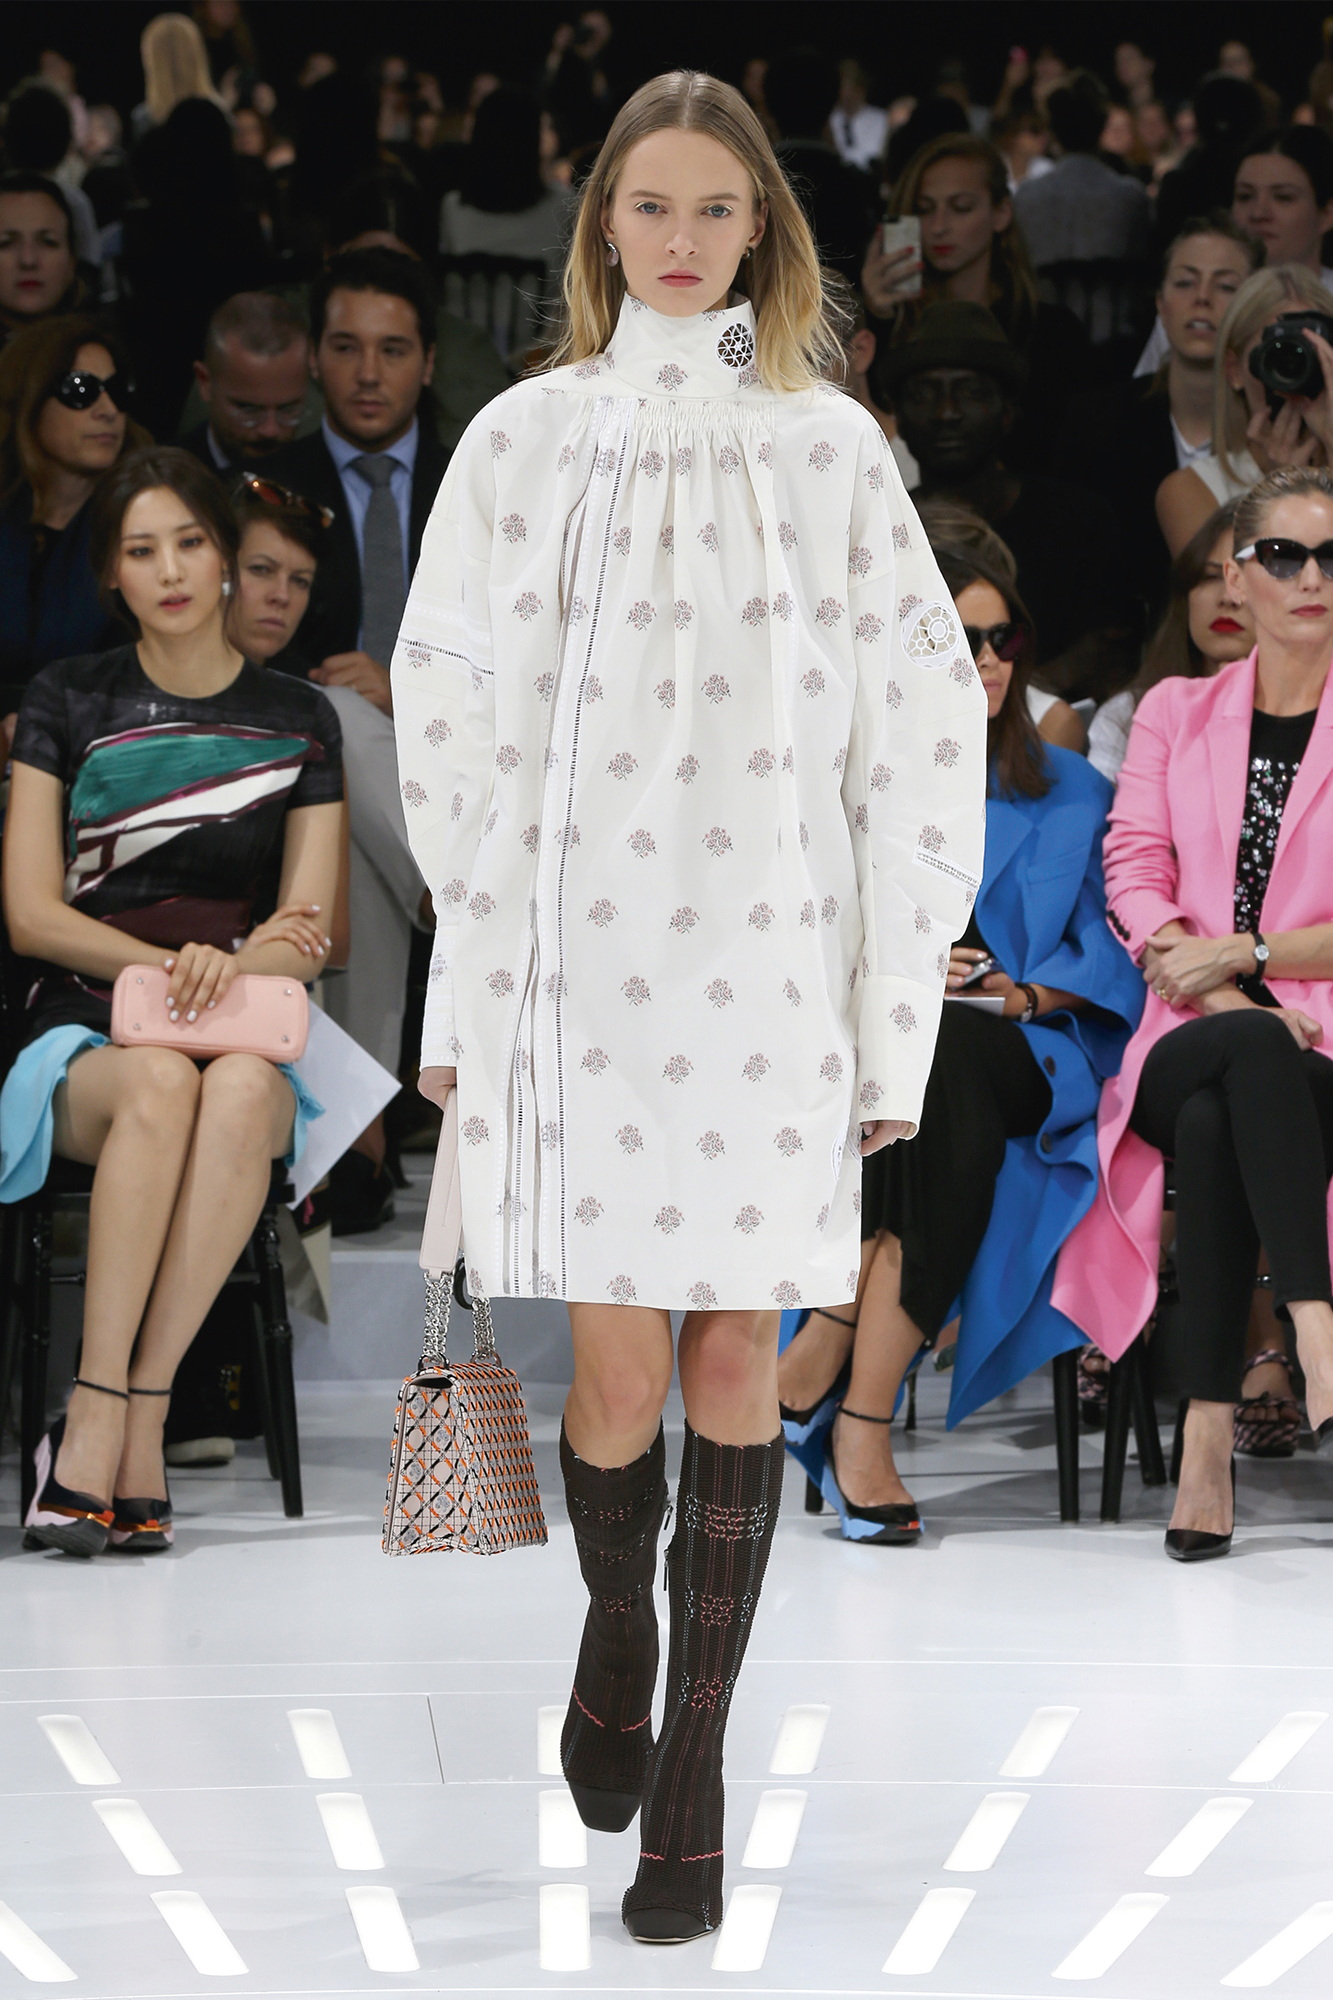 New Western Fashion Christian Dior Ready To Wear Dresses Spring Summer Collection 2015 (20)